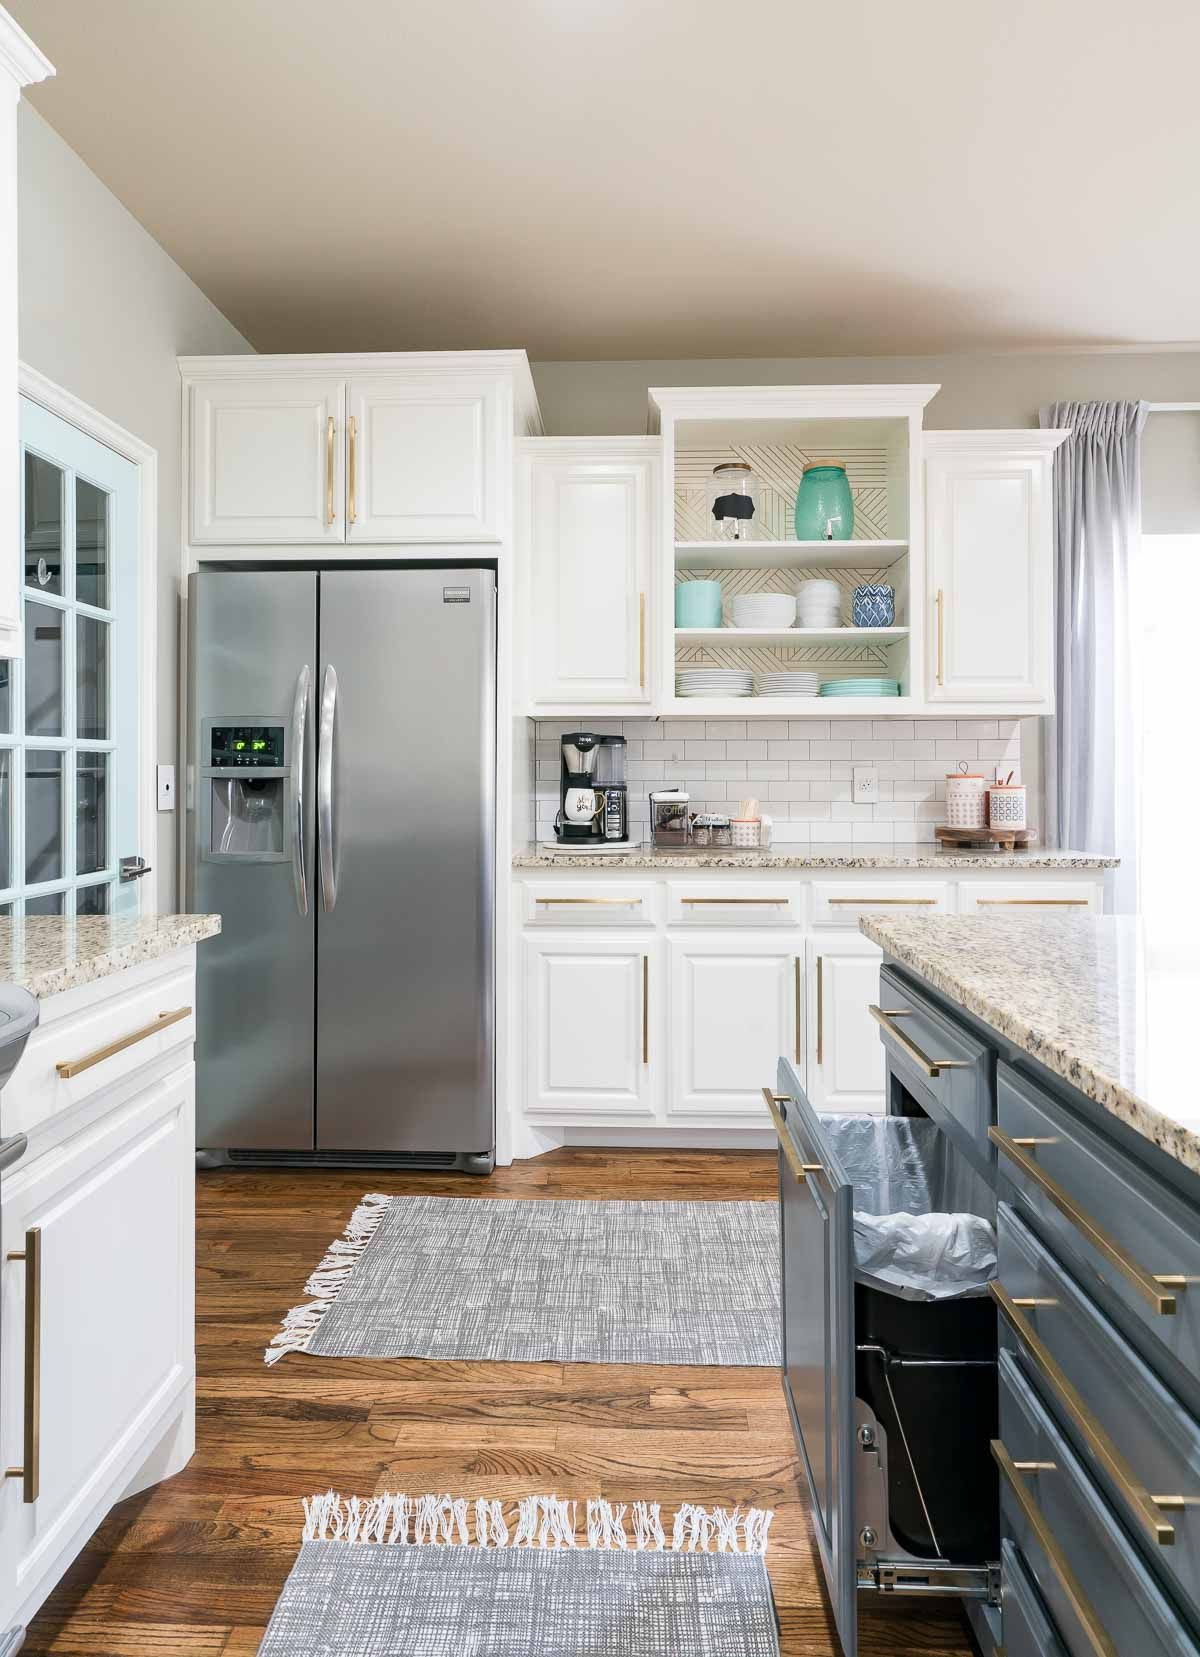 How To Organize Everything In Your Kitchen Polished Habitat Kitchen Cabinet Organization Kitchen Cabinets Kitchen Organization